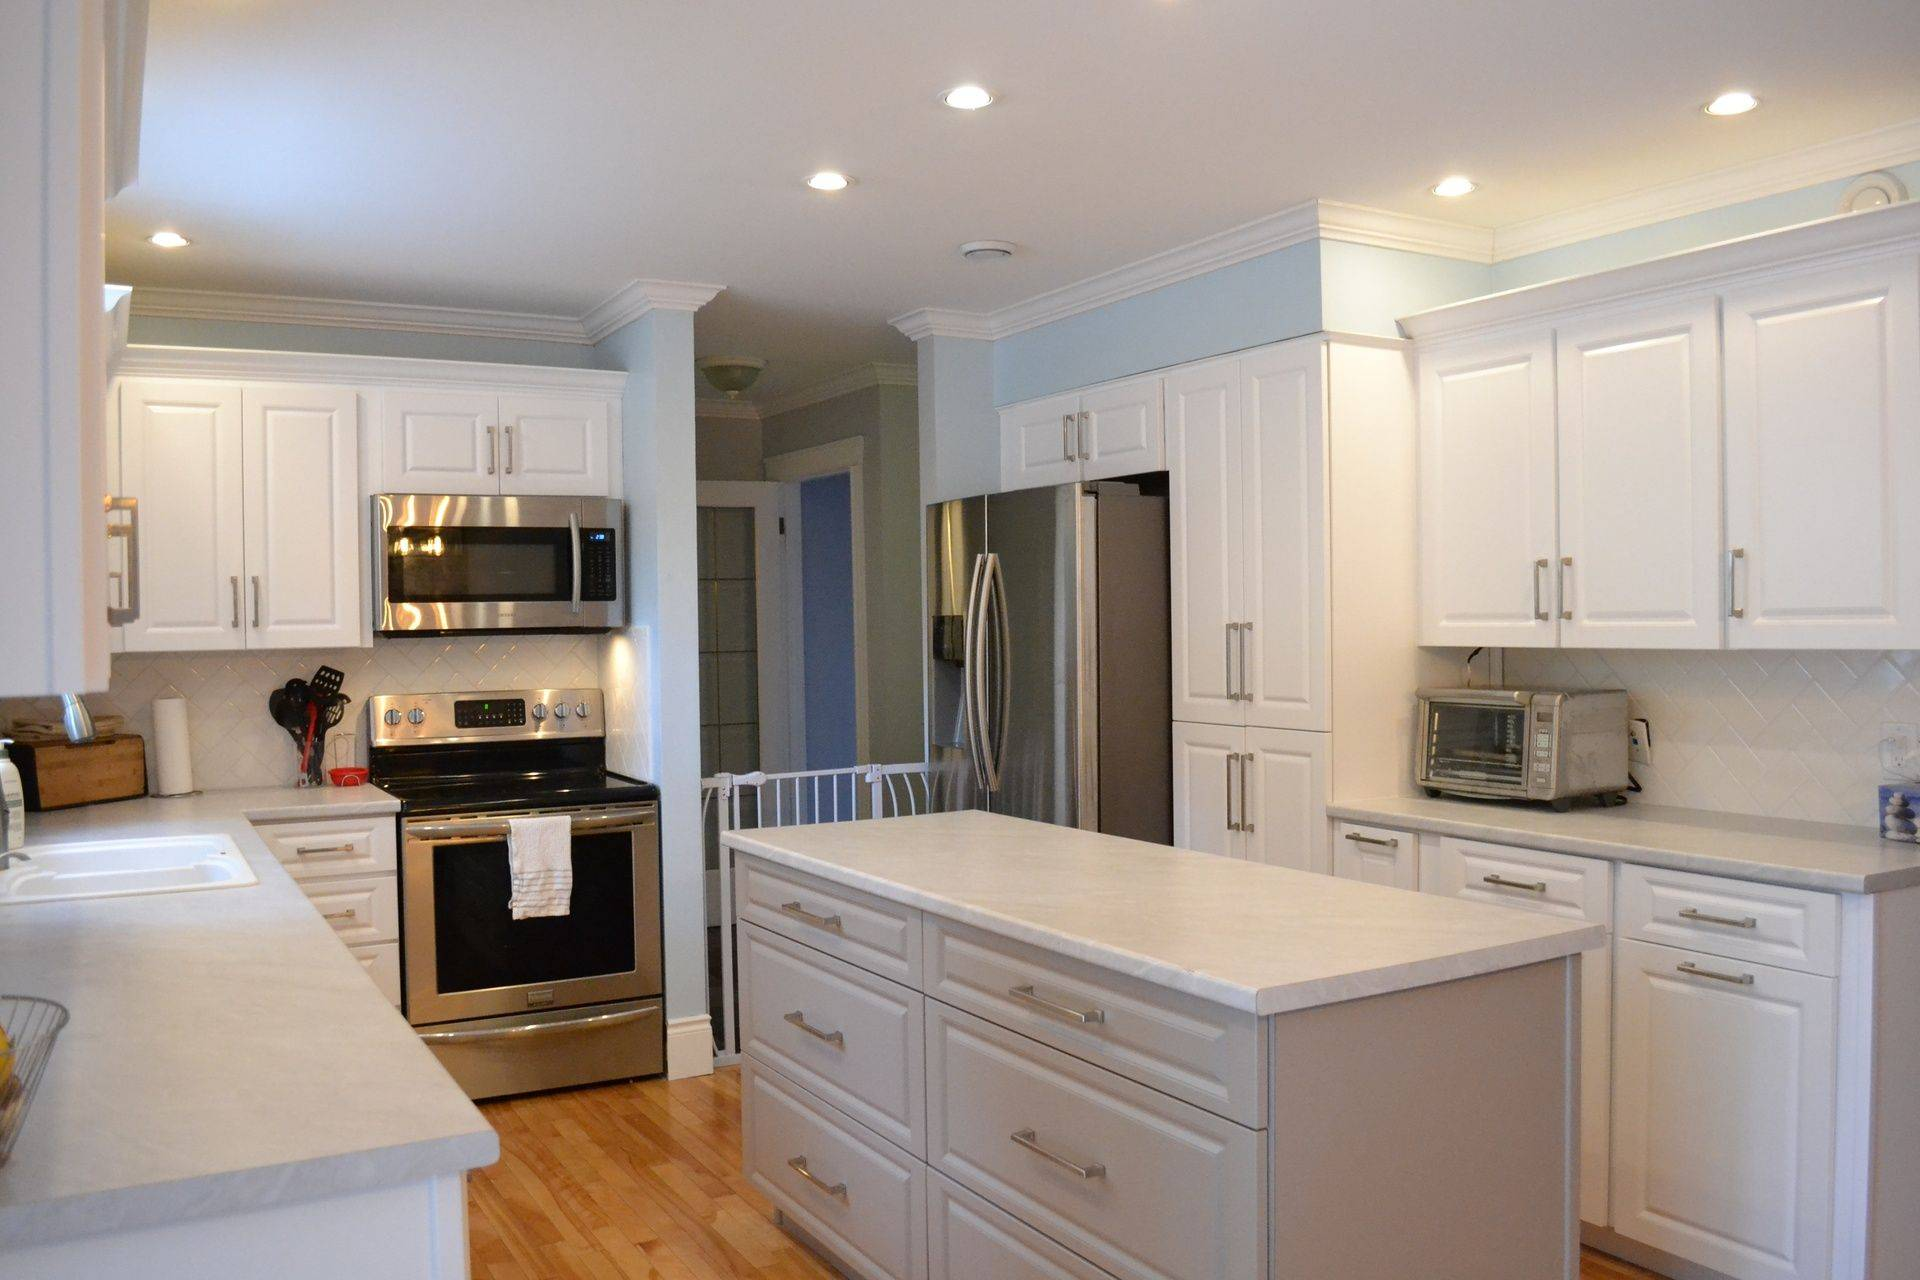 Kitchen specialist in cabinet refacing and refinishing for Kitchen cabinet refacing